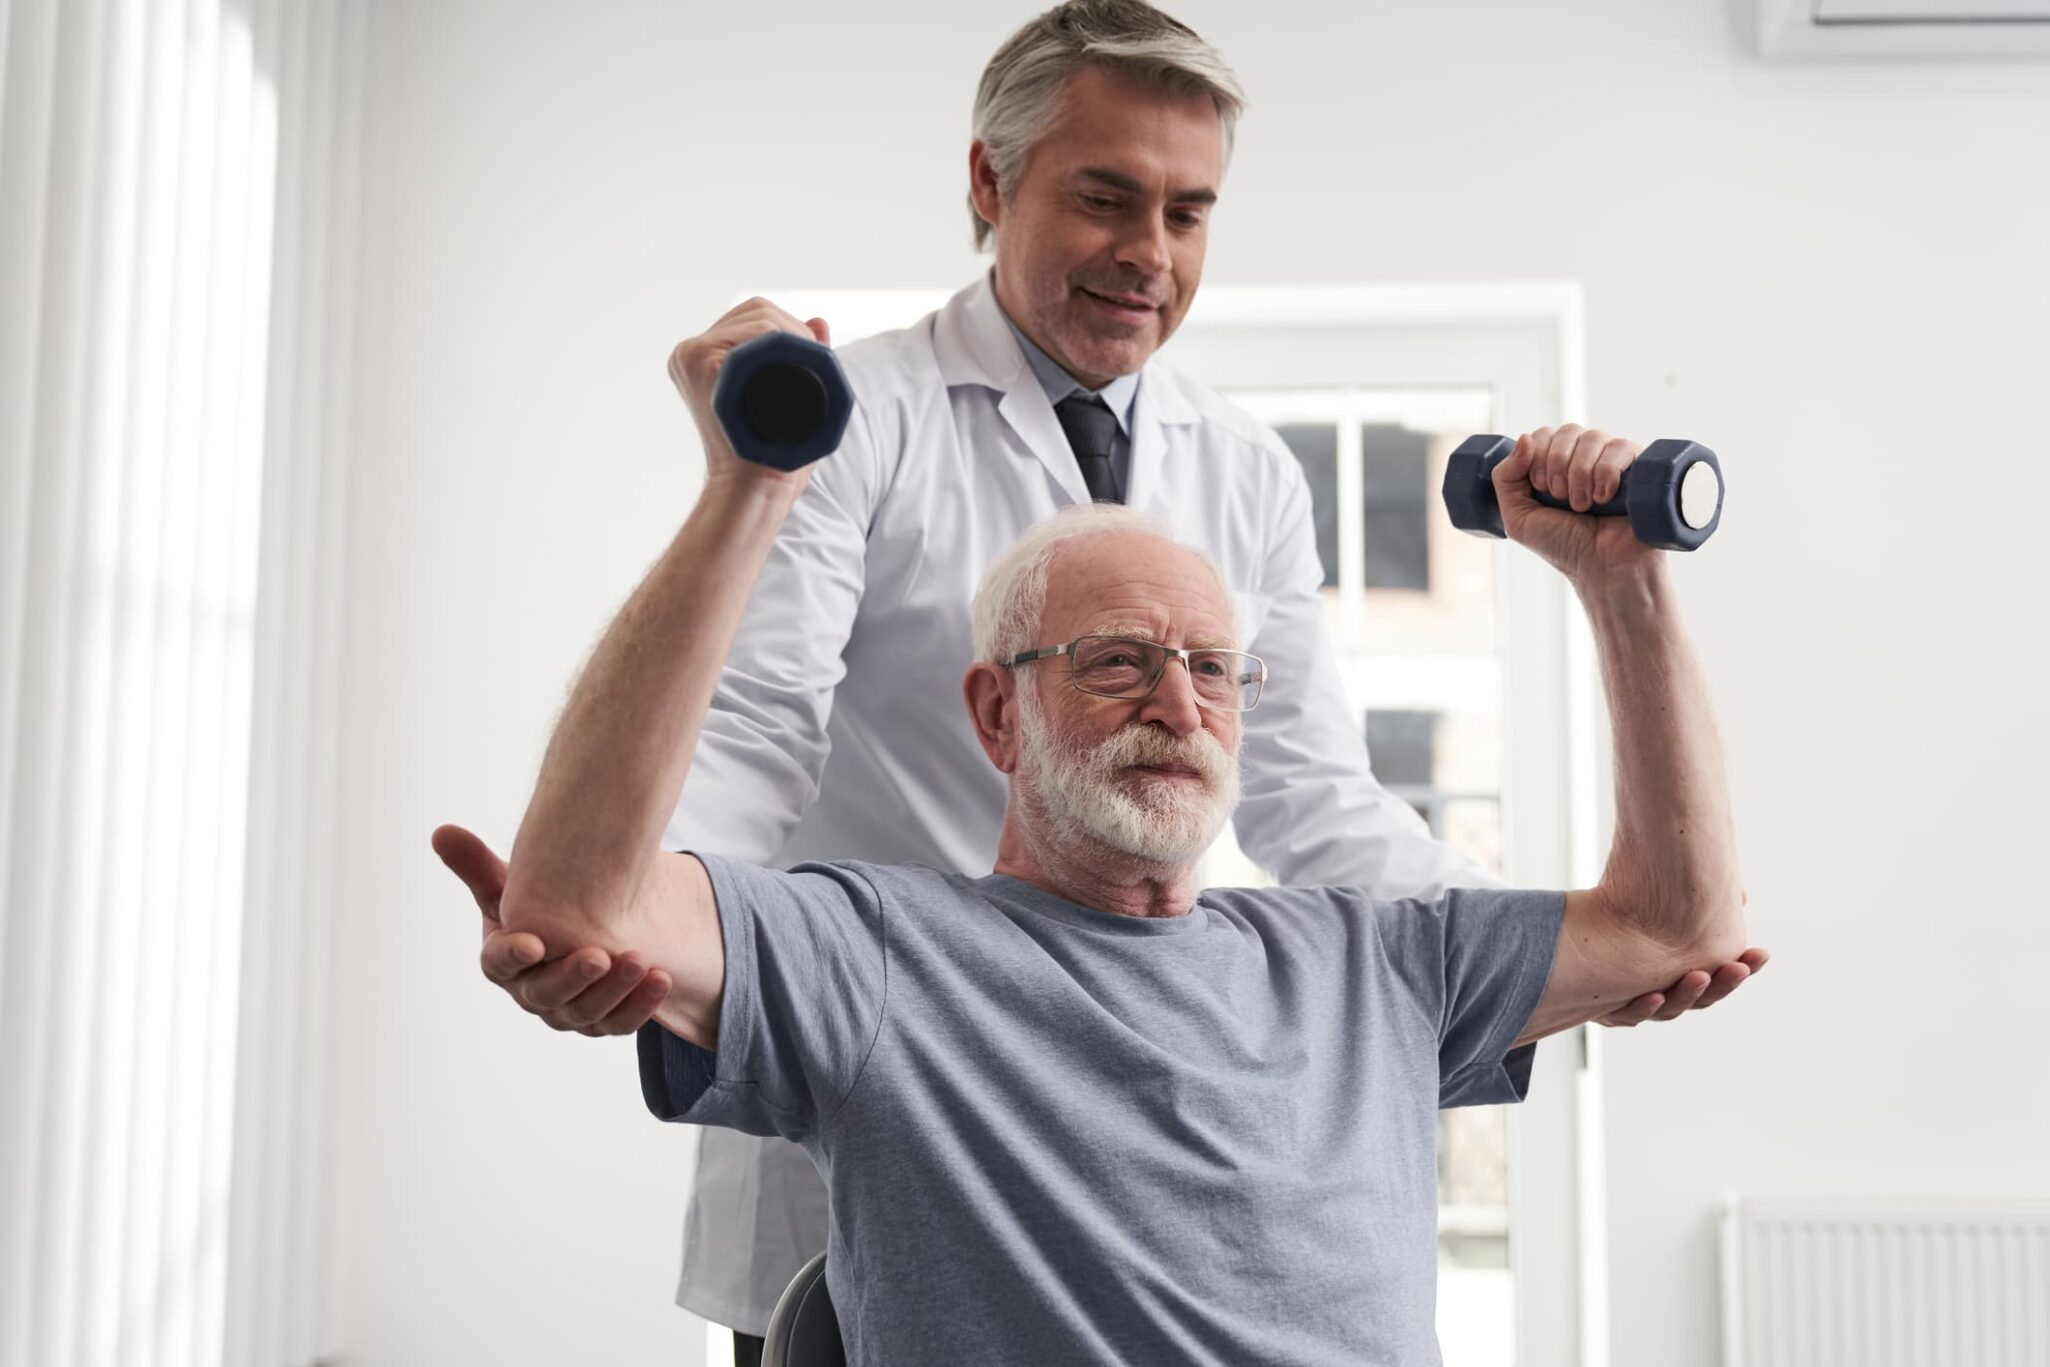 Older man doing arm exercises with weights and a therapist assisting.